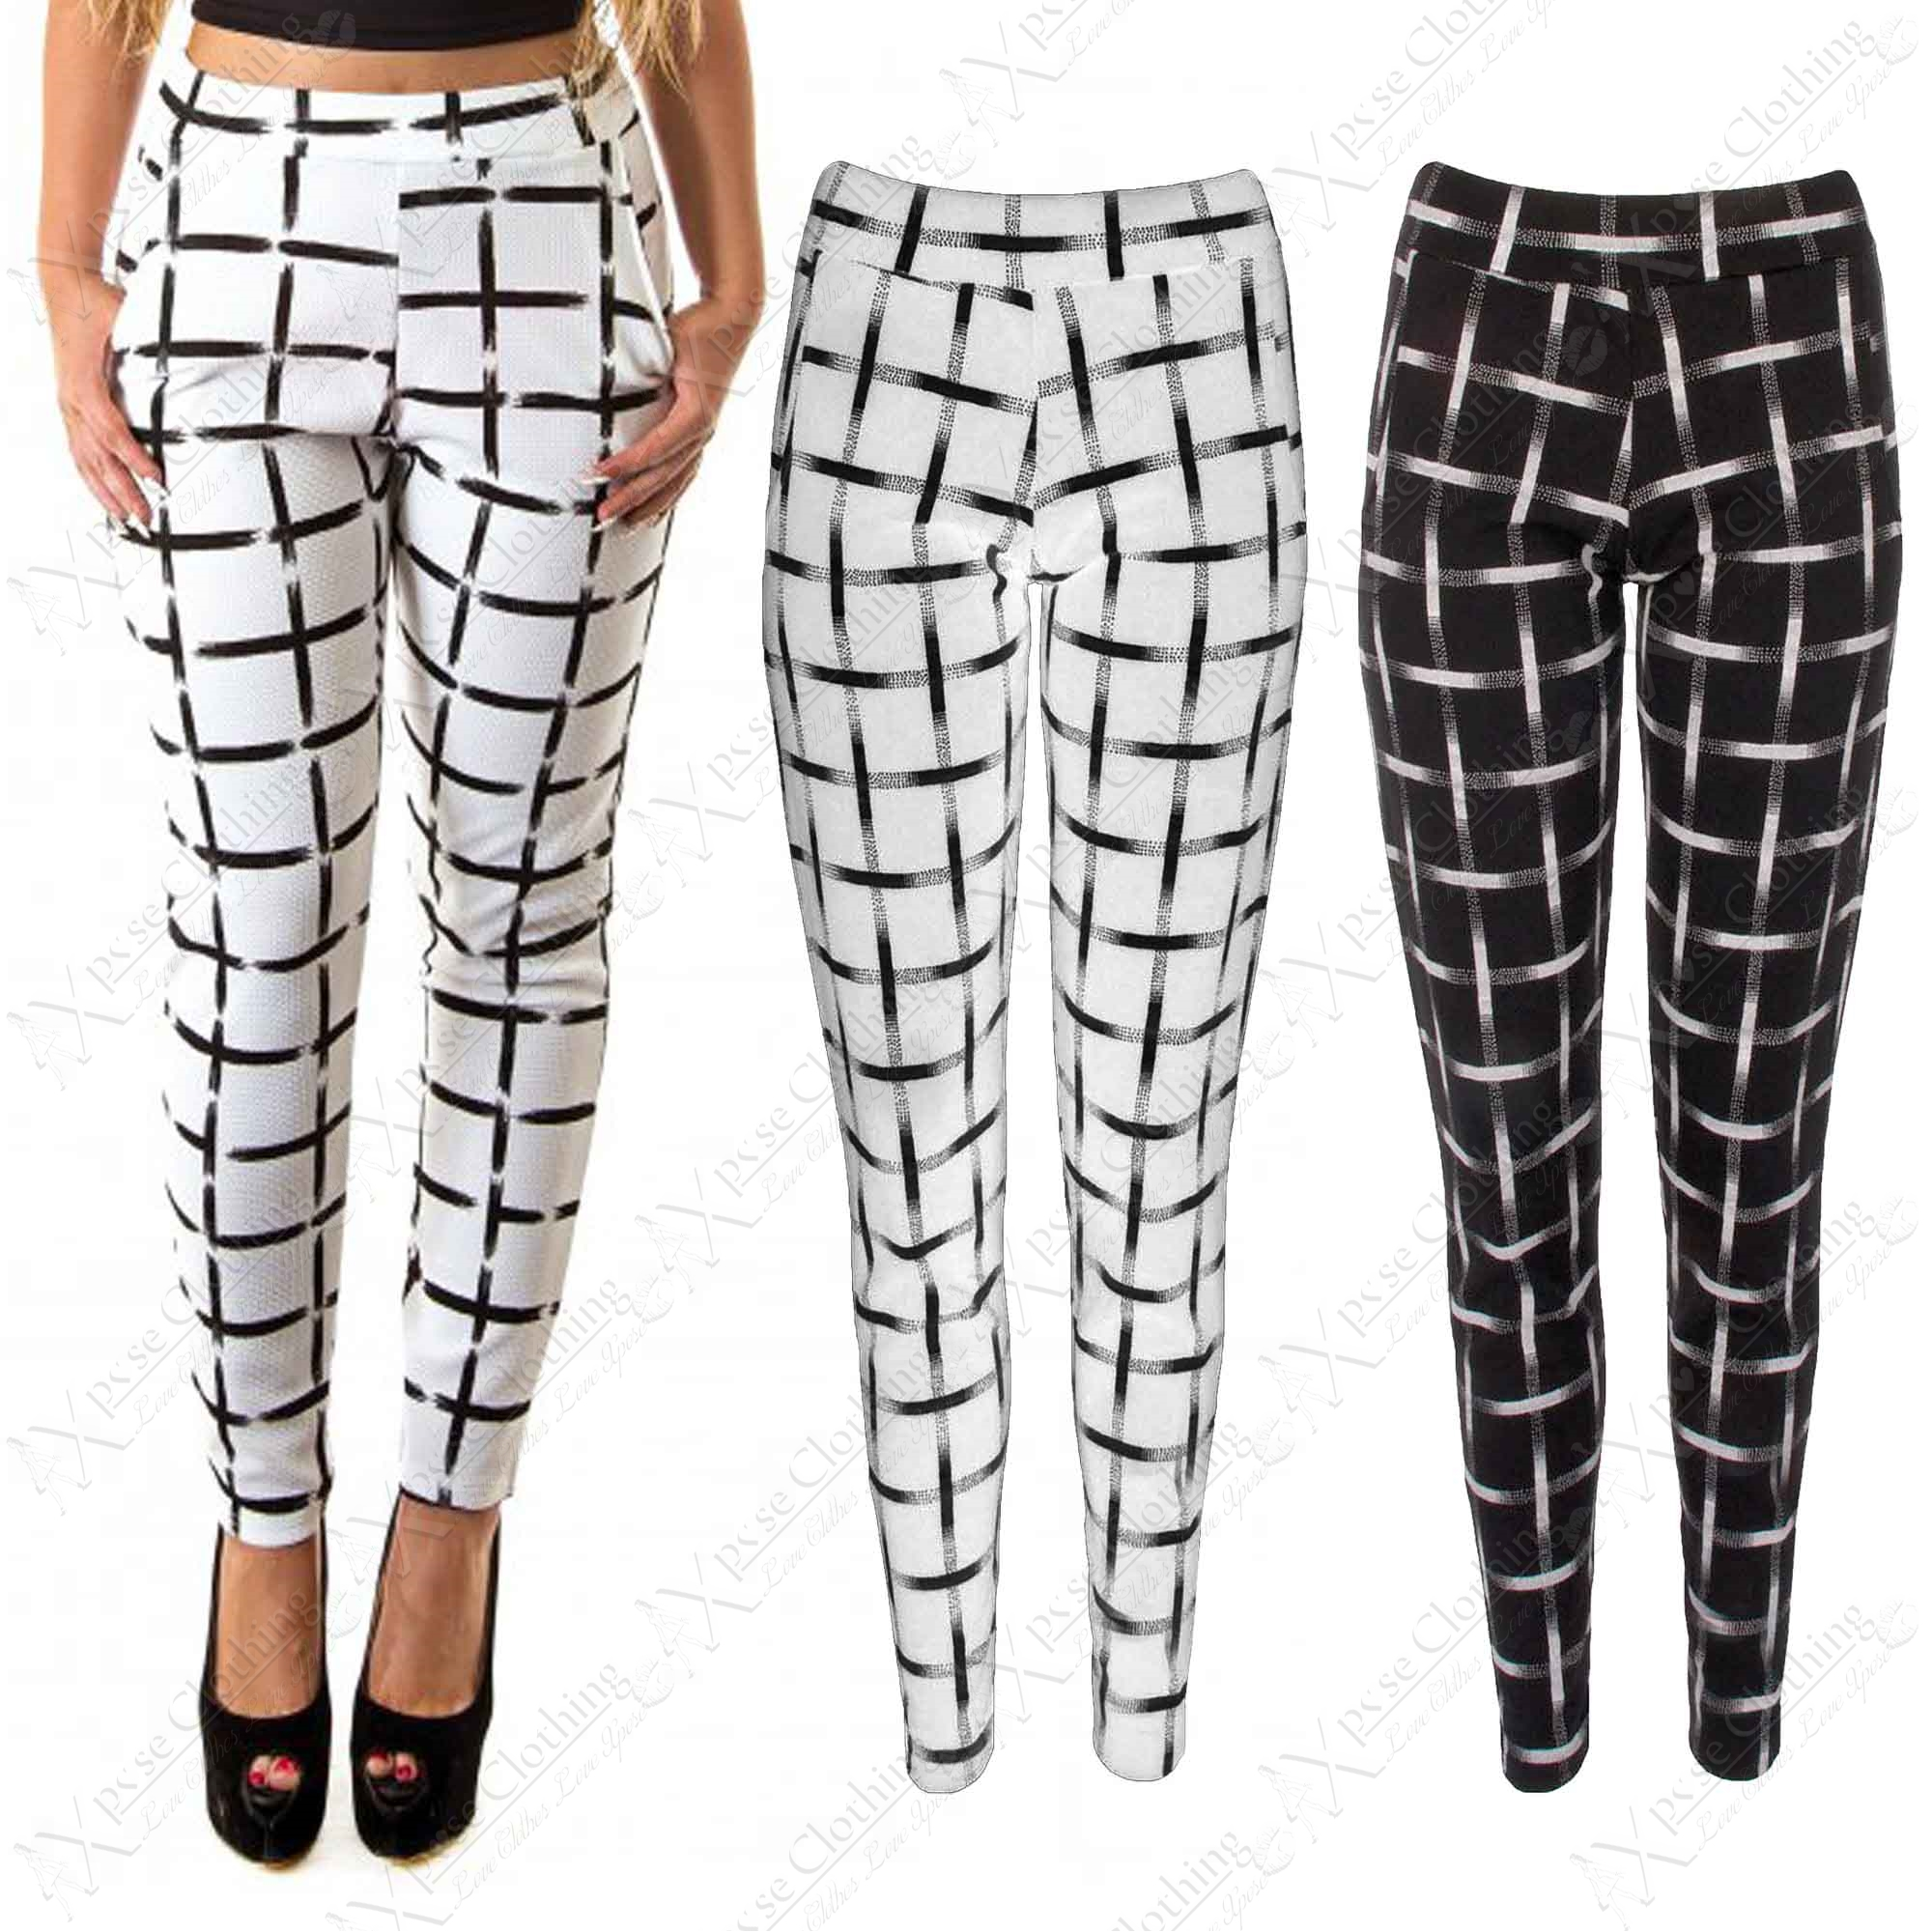 Shop our assortment of women's trousers & leggings online. From suitably smart womens trousers to loungewear leggings there's Free UK delivery on orders over £